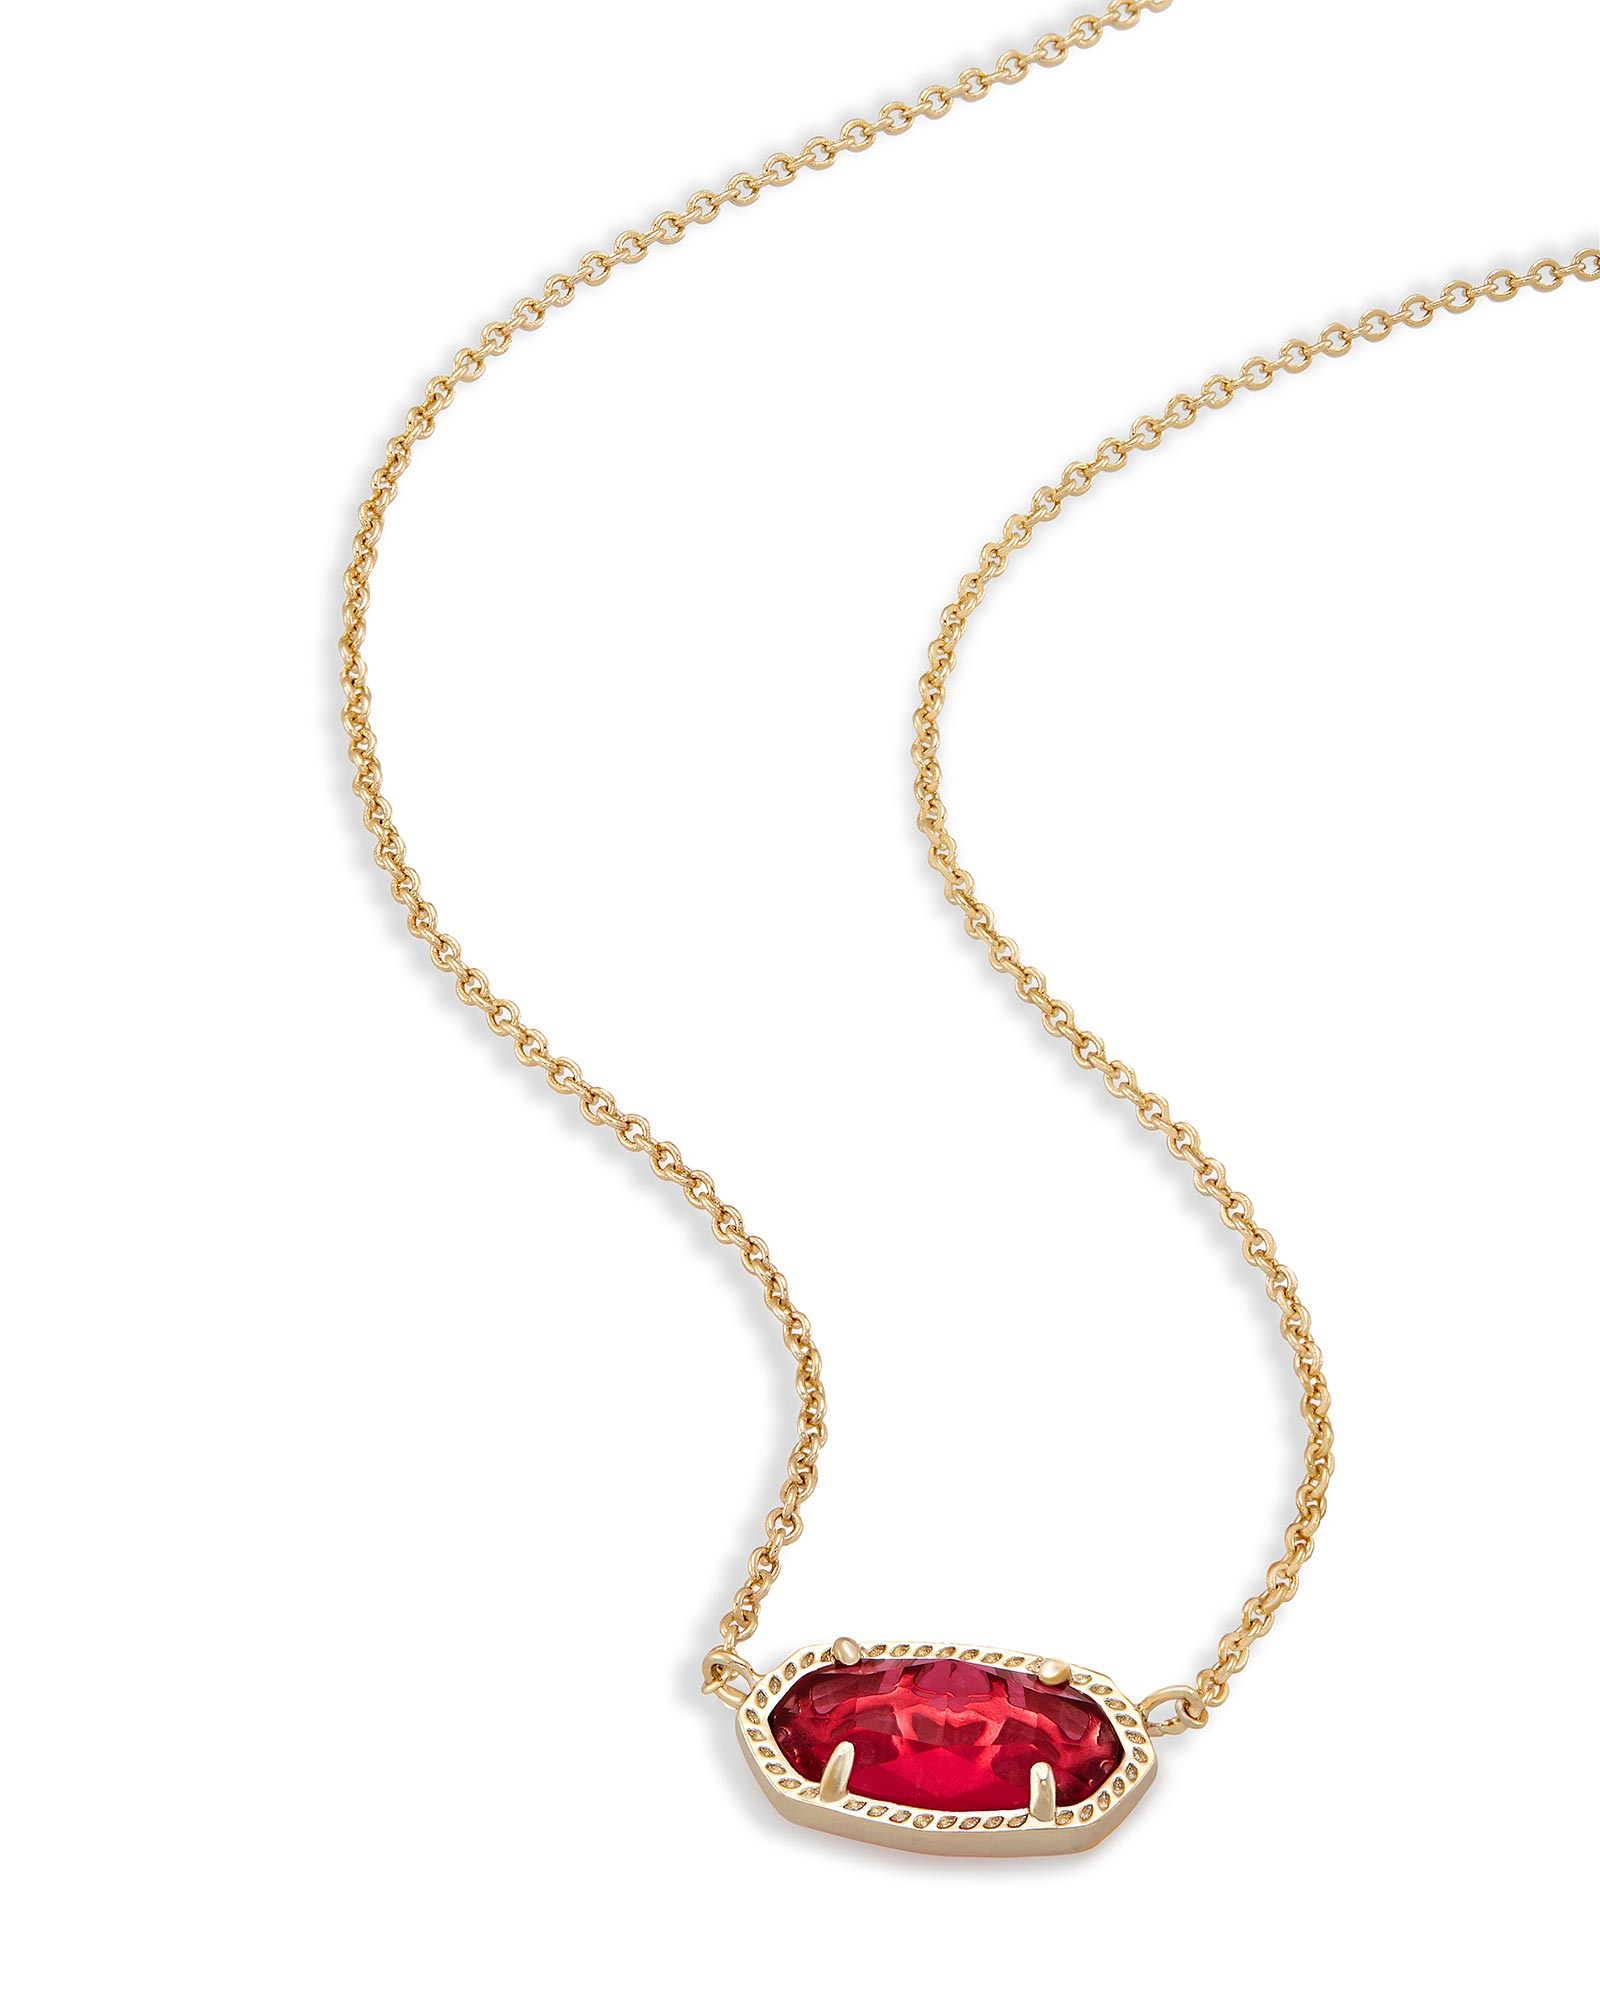 Elisa Brass Pendant Necklace In Berry | Kendra Scott Within 2019 Sparkling Stones Pendant Necklaces (View 4 of 25)